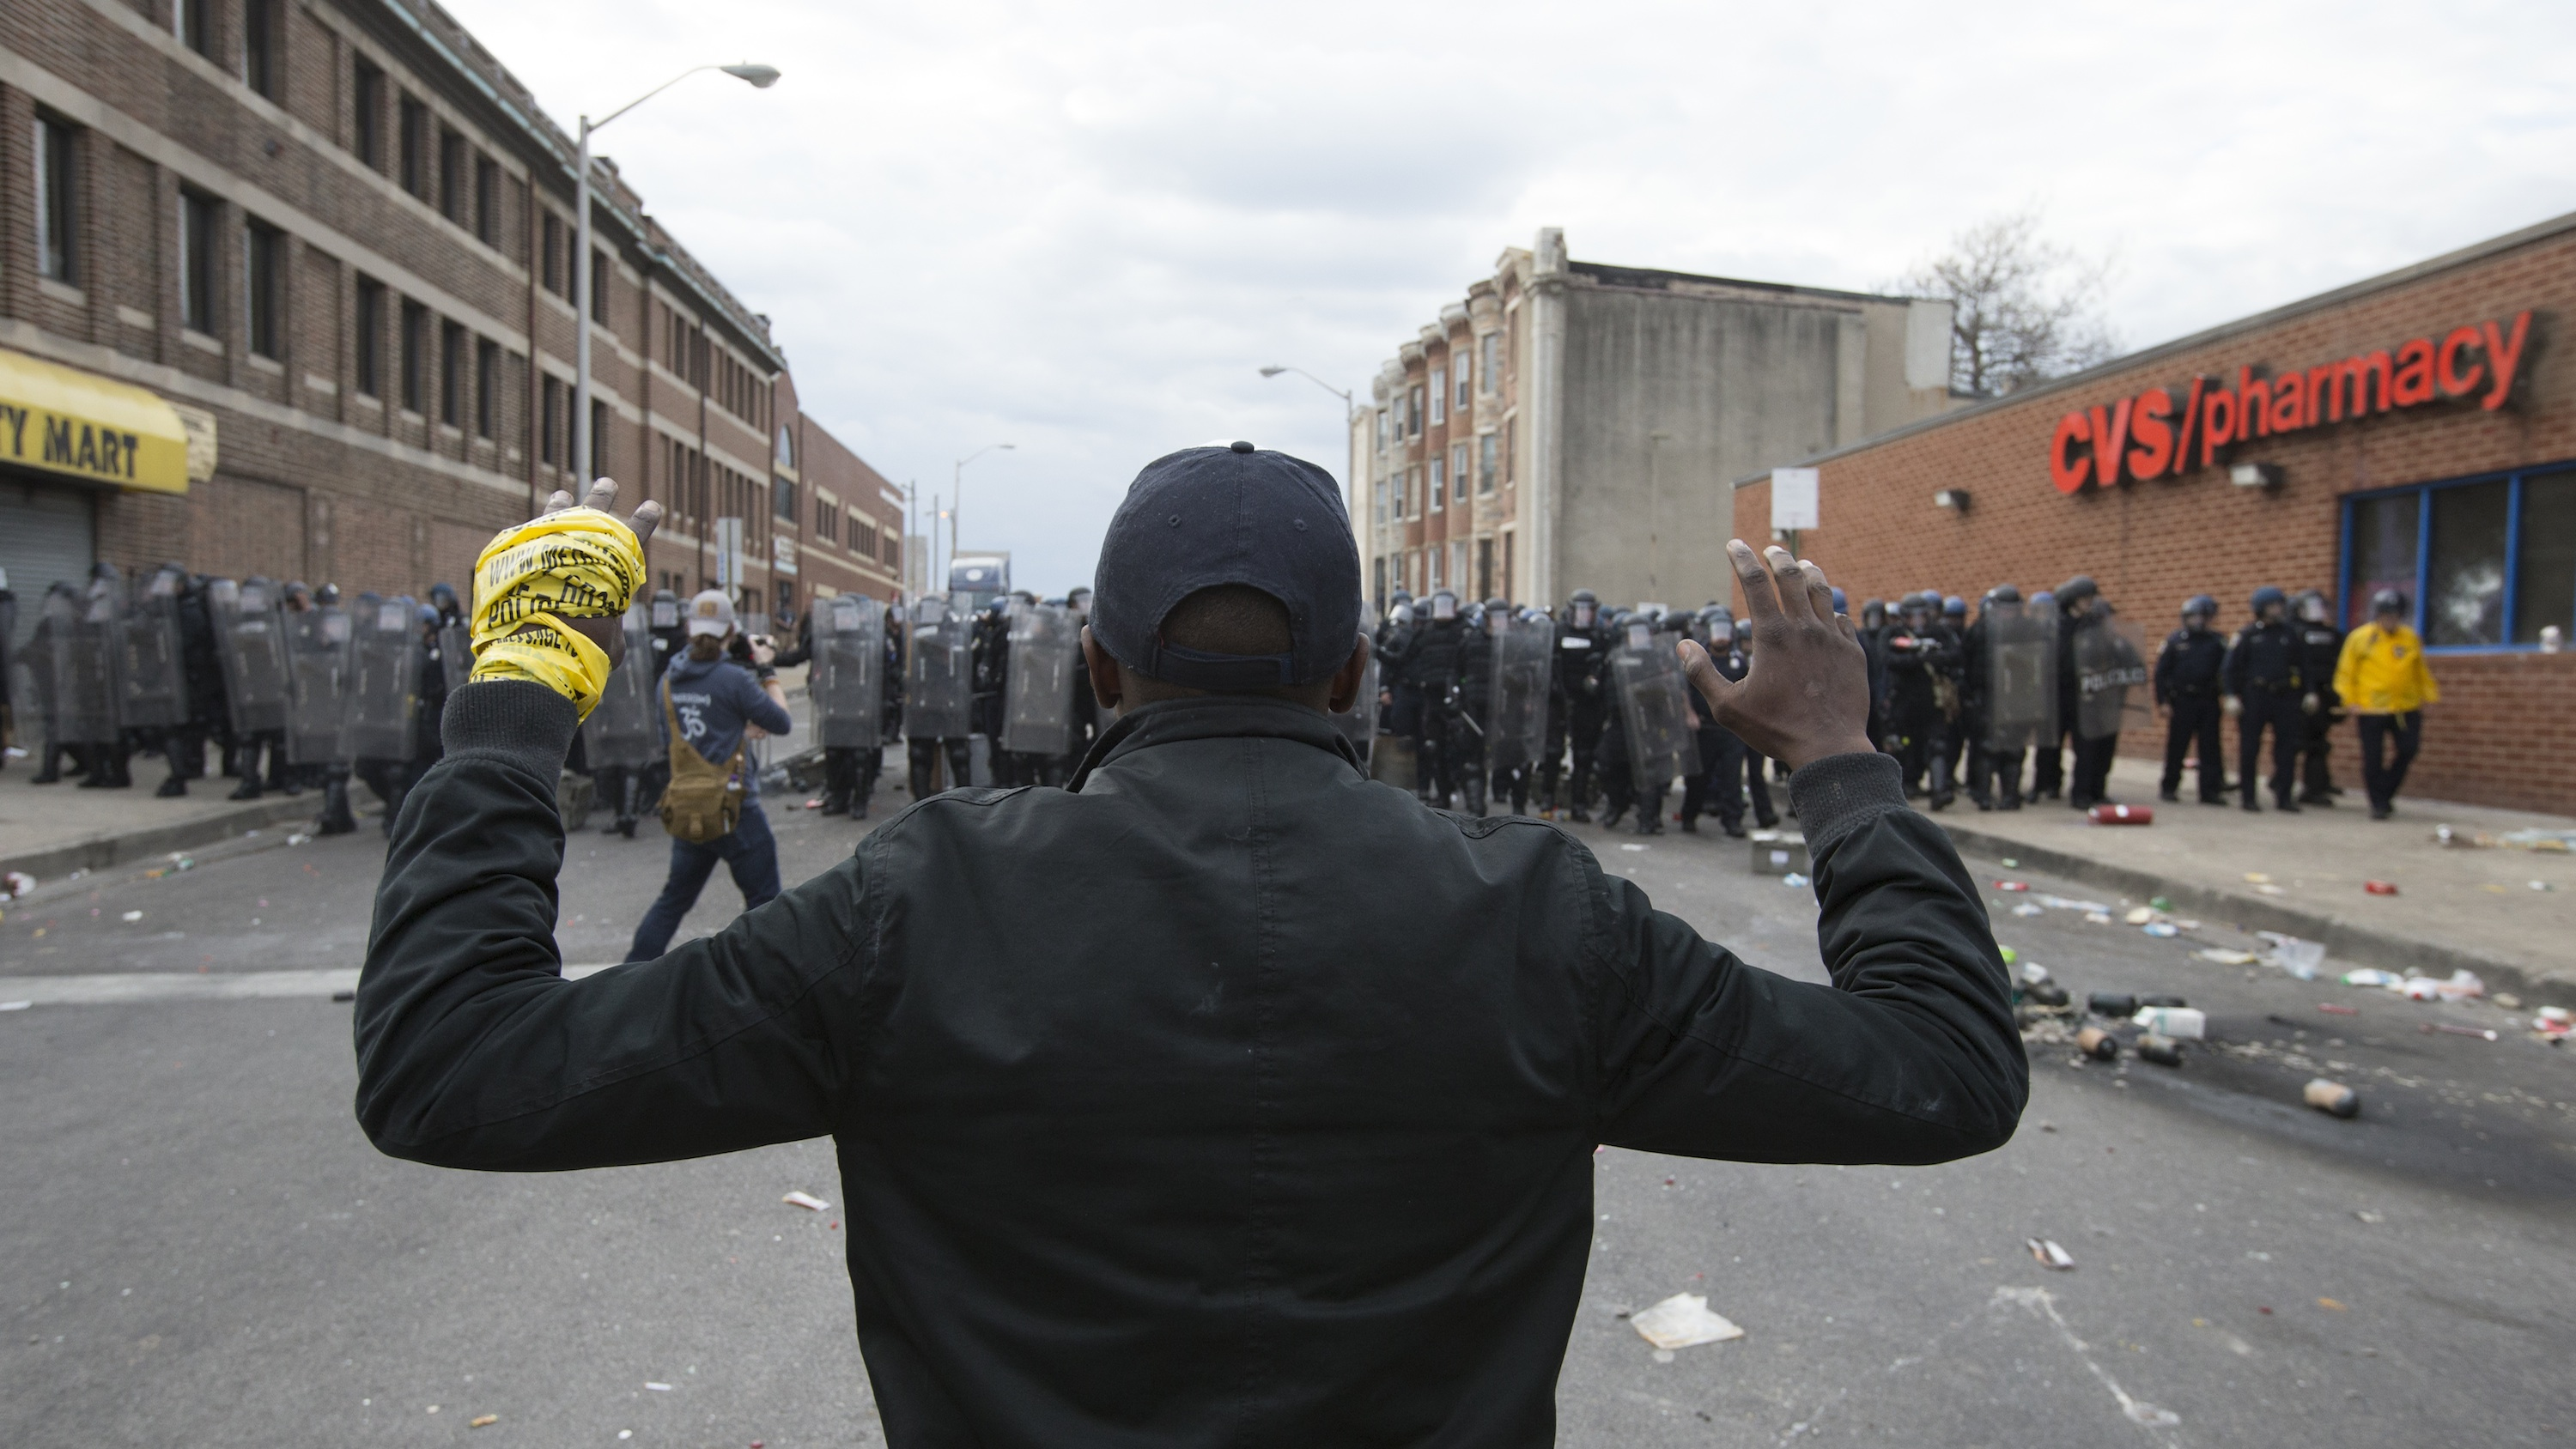 A youth stands in front of a police line as protests of the death of Freddie Gray continue, in Baltimore, Maryland, on April 27, 2015.